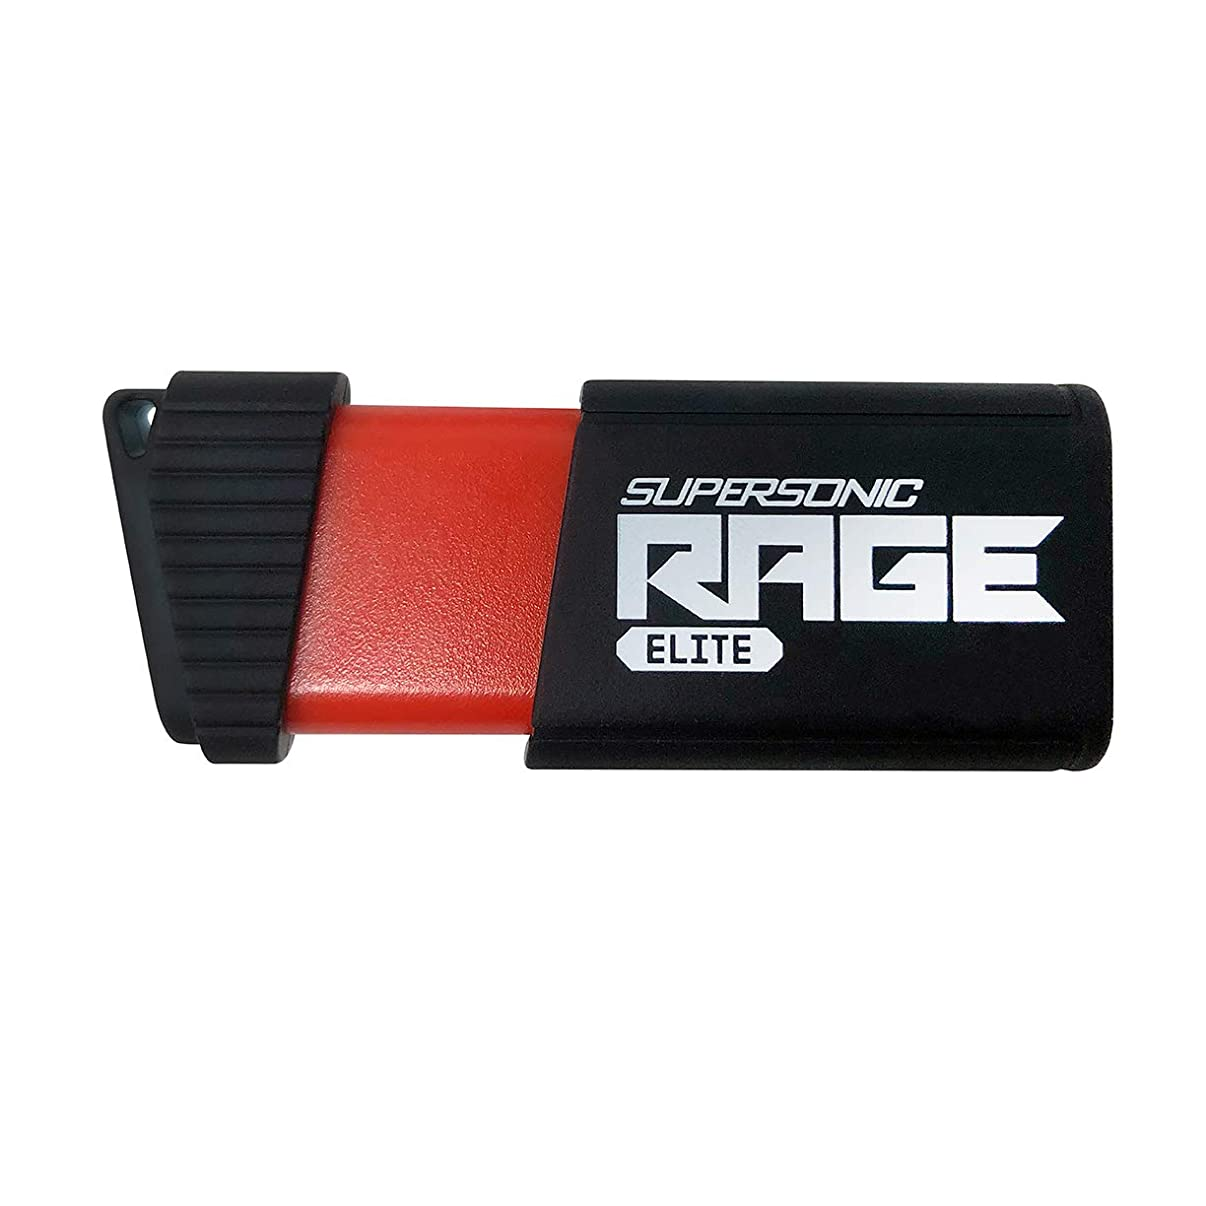 Patriot 128GB Supersonic Rage Elite USB 3.1 Type A, USB 3.0 Flash Drive with Transfer Speeds of Up to 400MB/sec